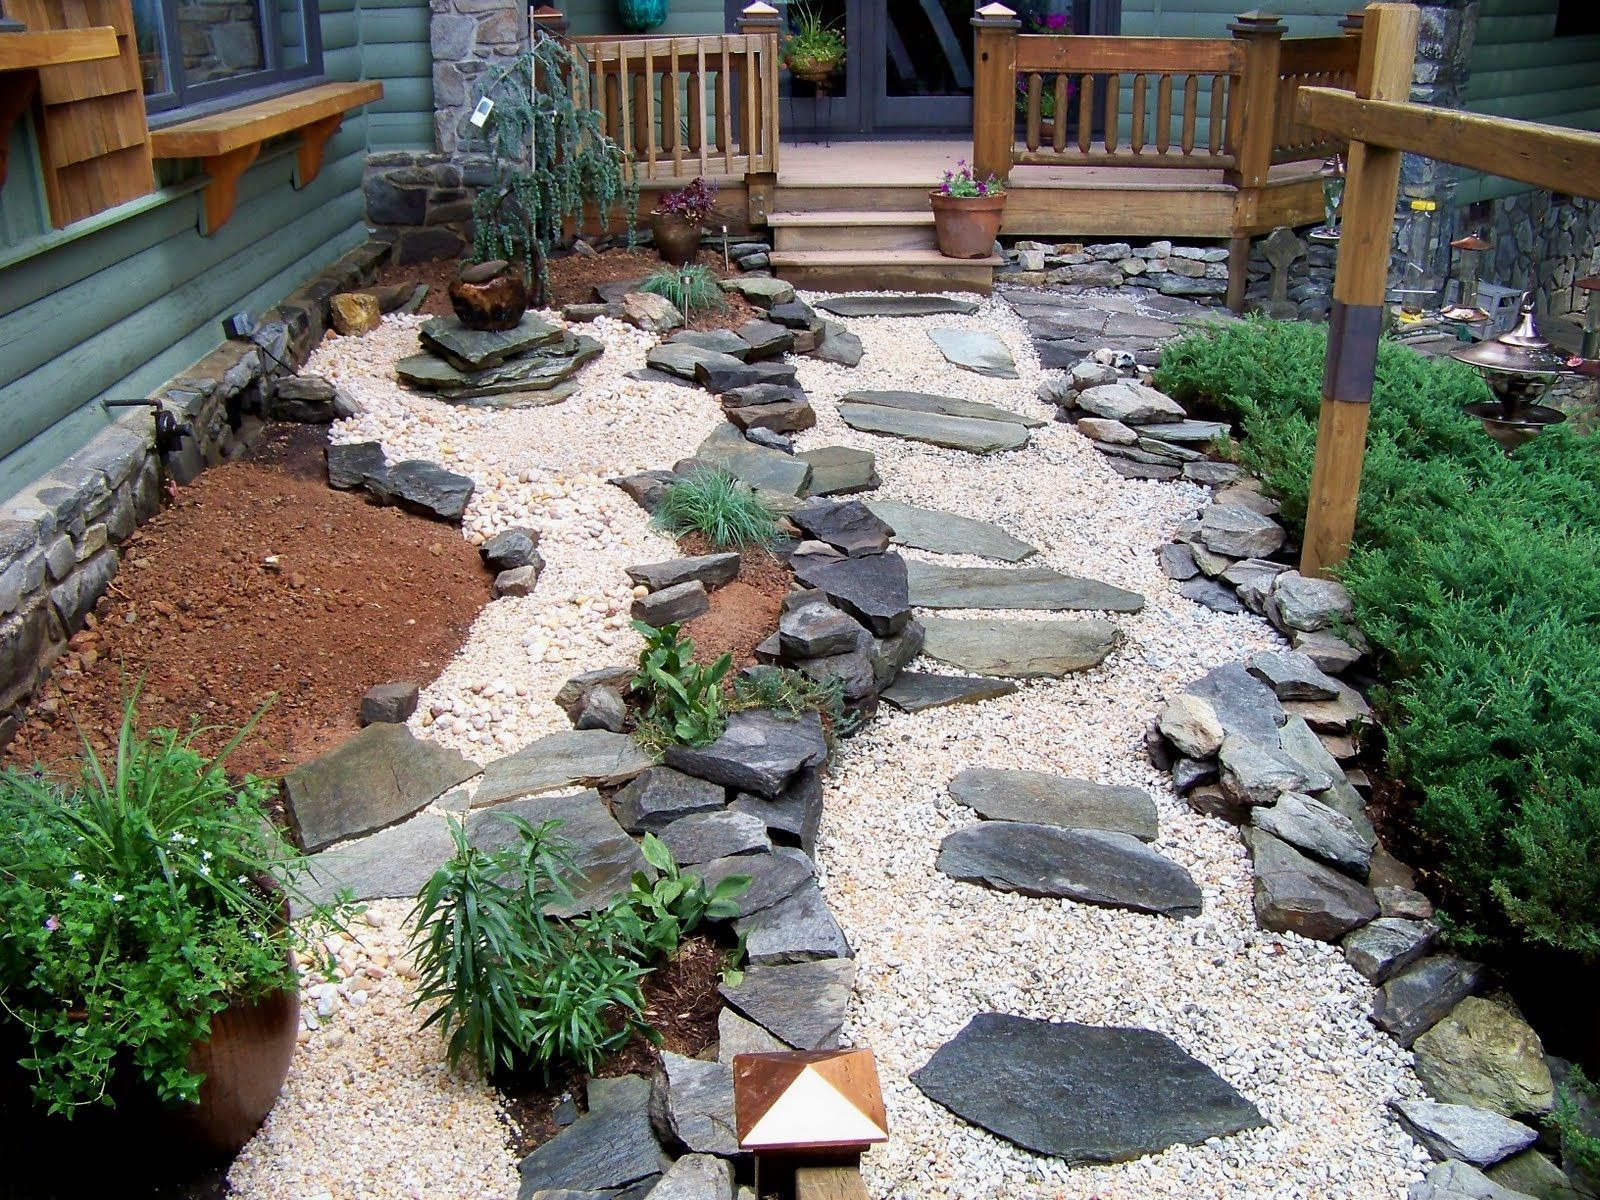 Exceptional Garden Design With Rock Garden Ideas Using Nature Exterior Accent Designing  City With Front Yard Landscapes. Small Japanese ...